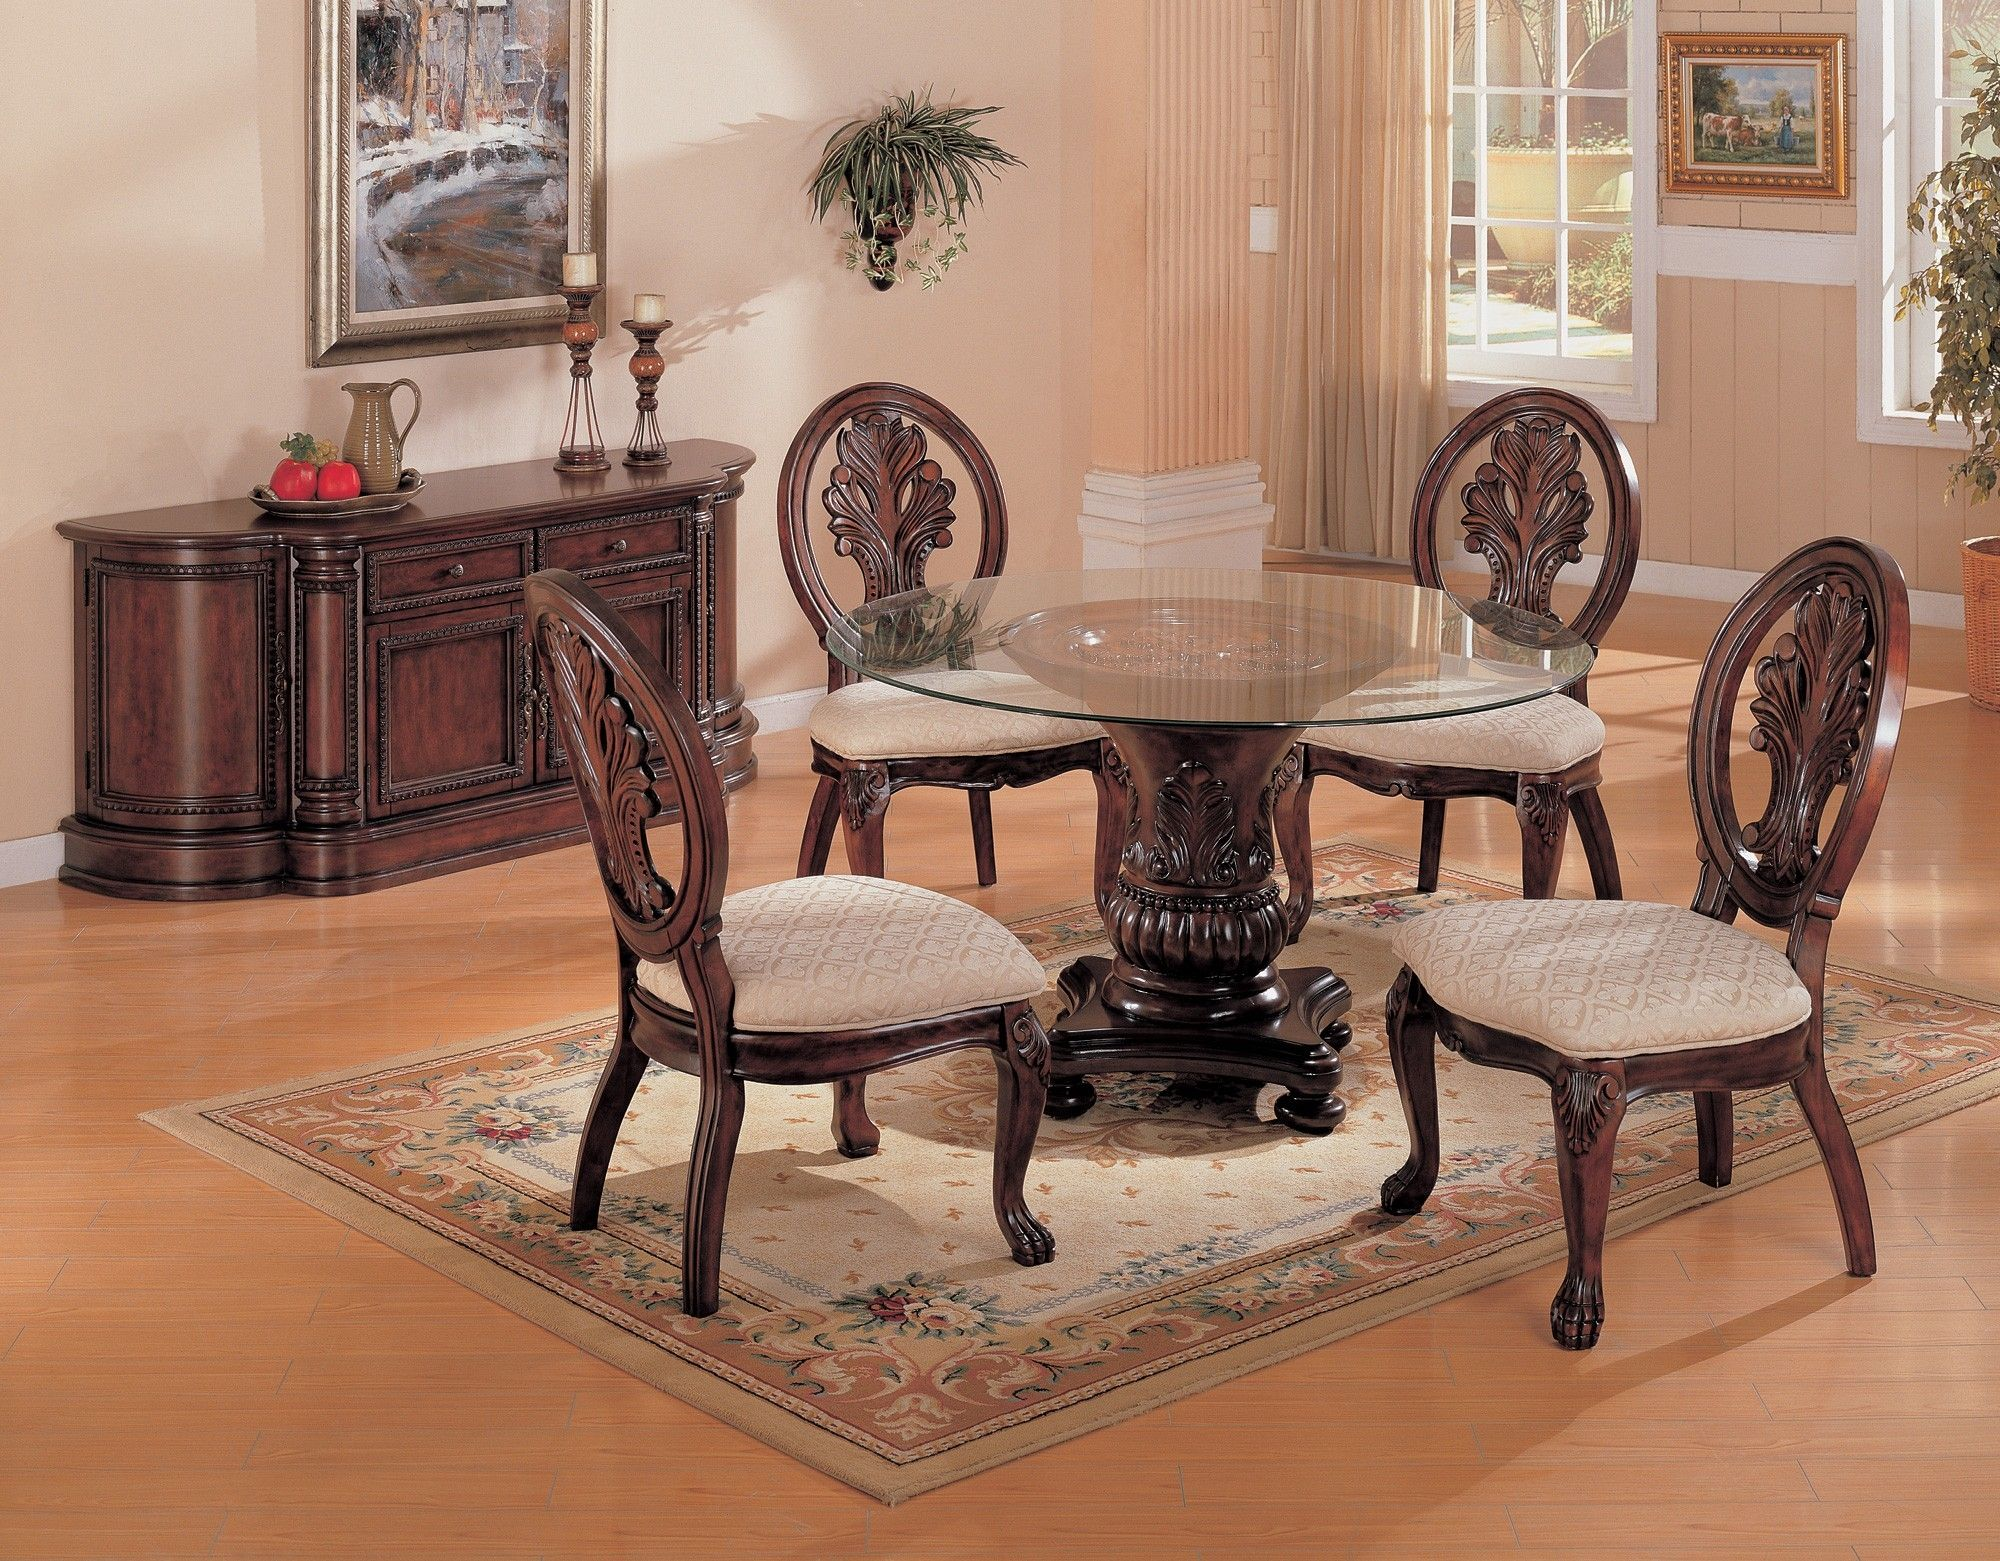 48 Round Glass Dining Table Set